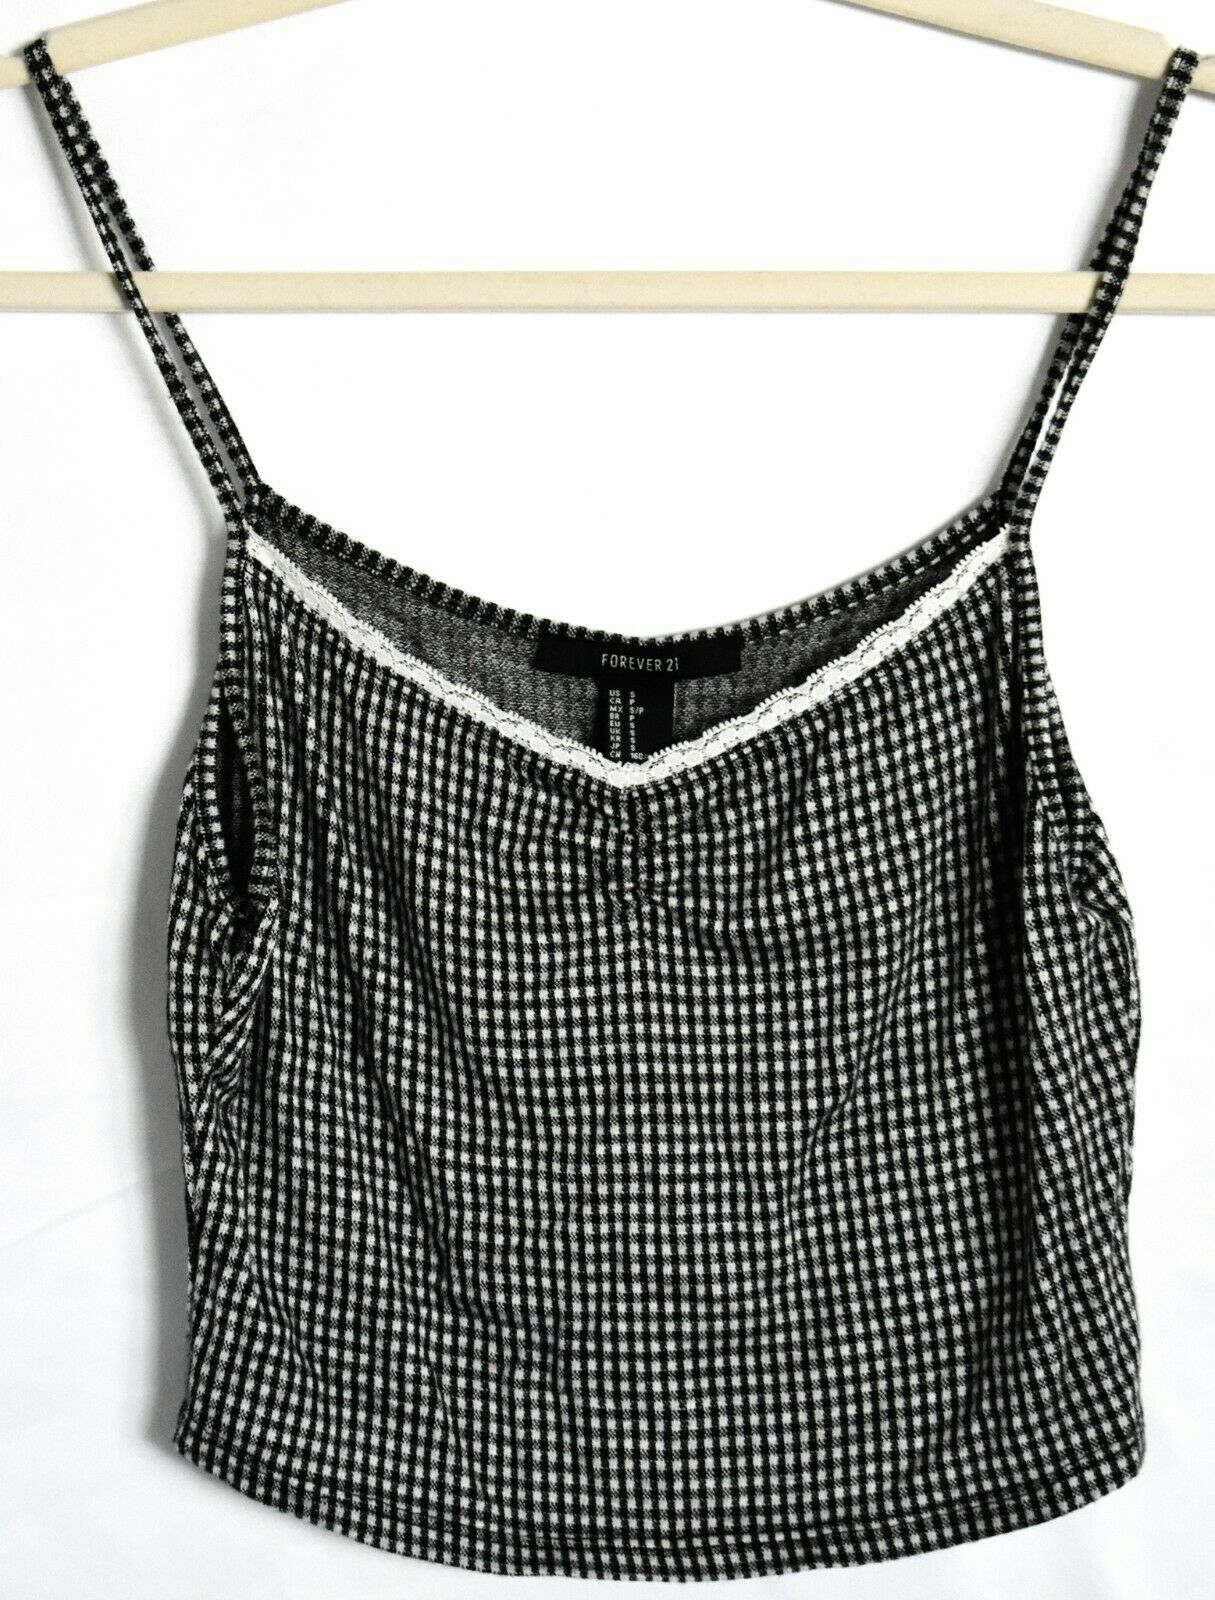 Forever 21 Check Gingham Plaid Cropped V-Neck Tank Top Size S